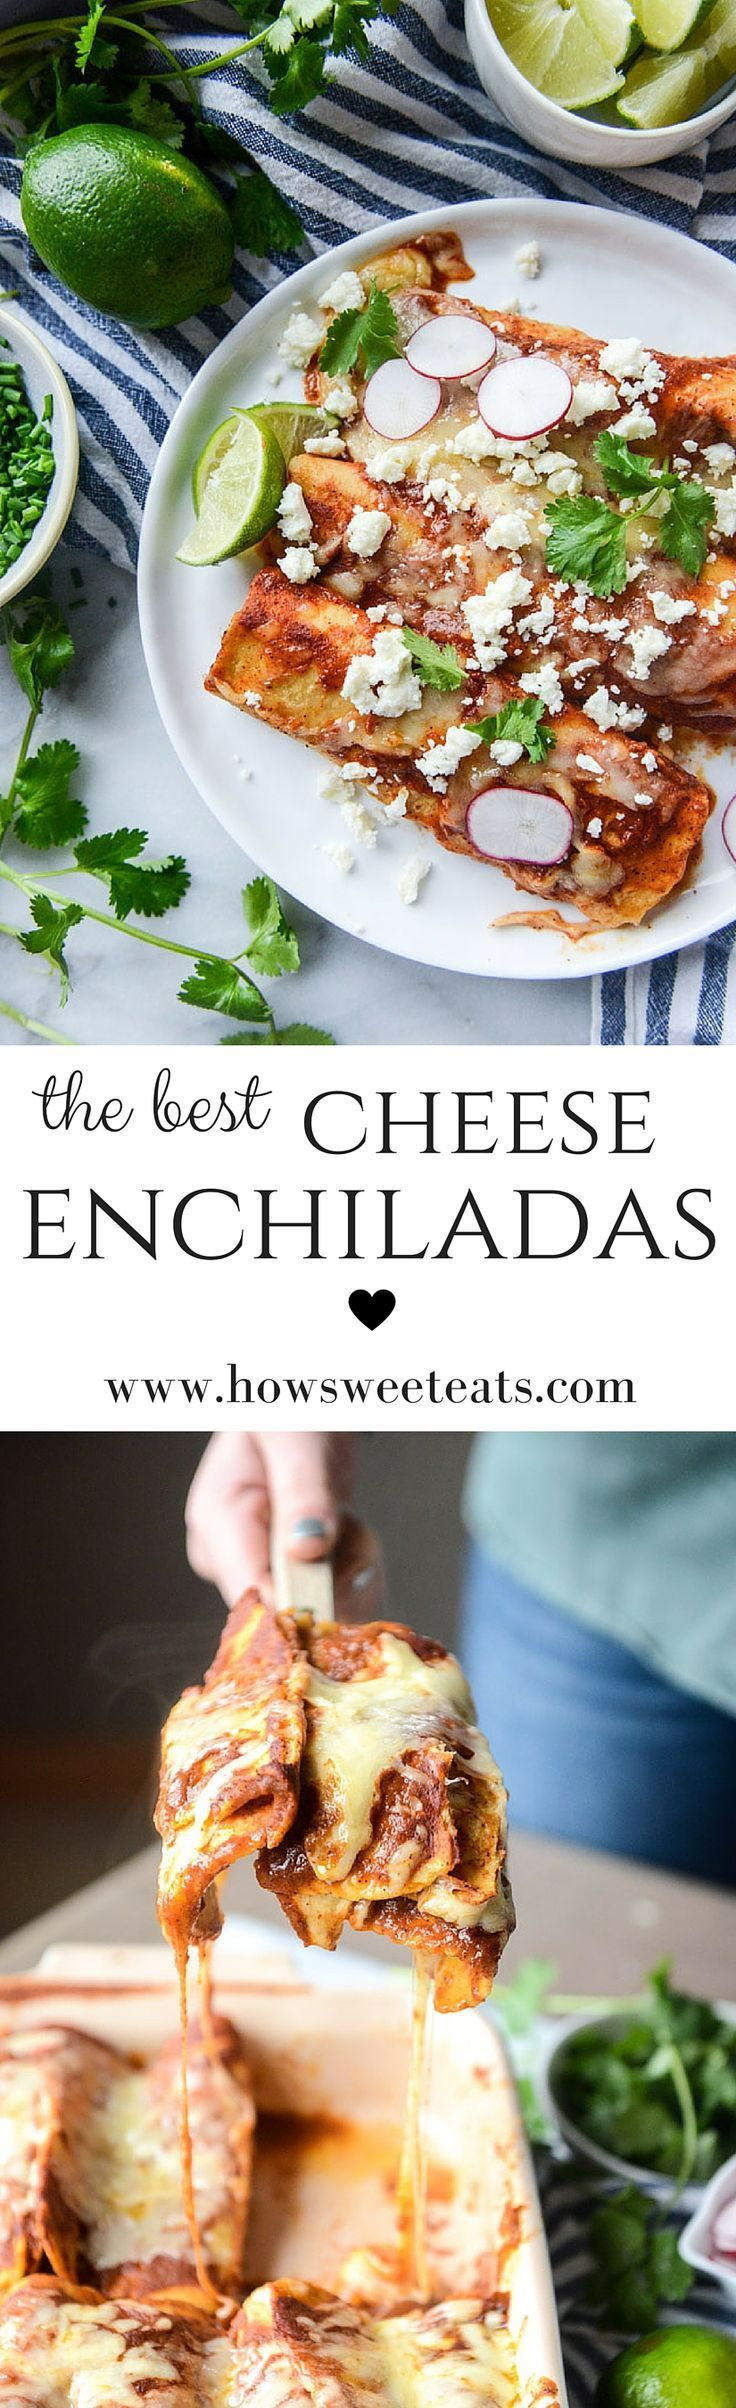 Best Cheese Enchilada Recipe! by /howsweeteats/ I http://howsweeteats.com